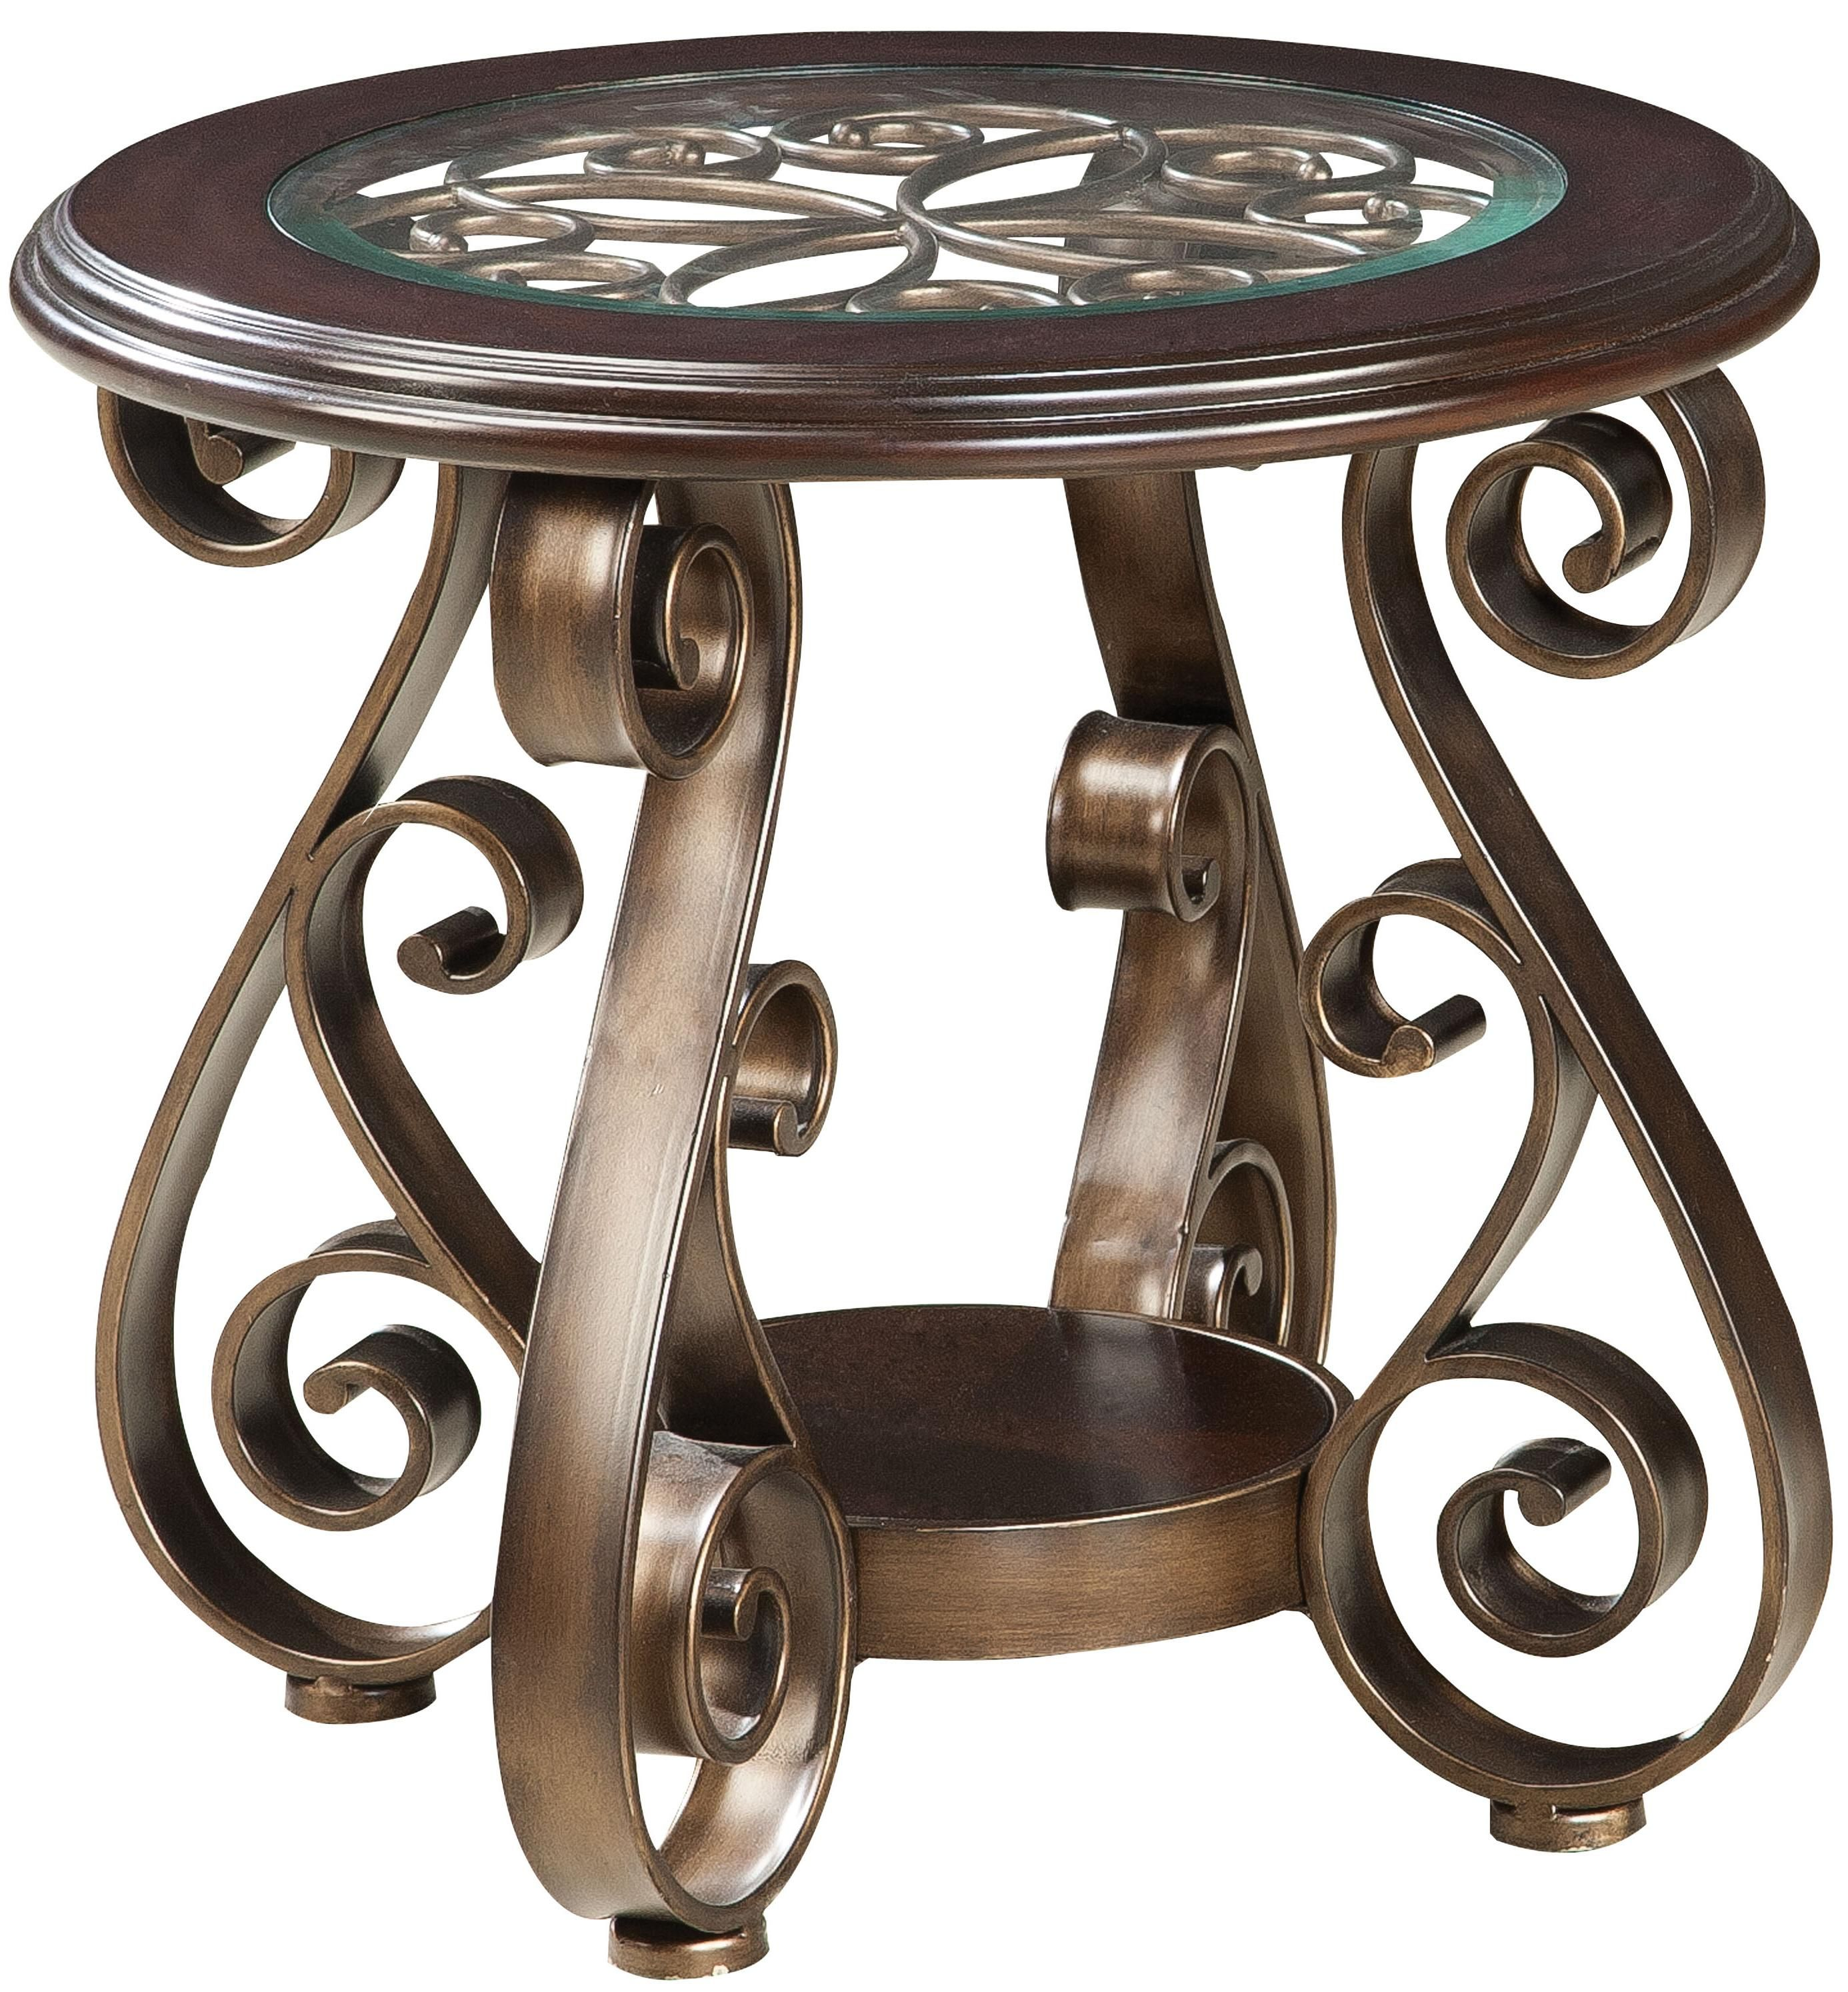 Standard Furniture Bombay Old World End Table With Glass Top And S Scroll  Legs